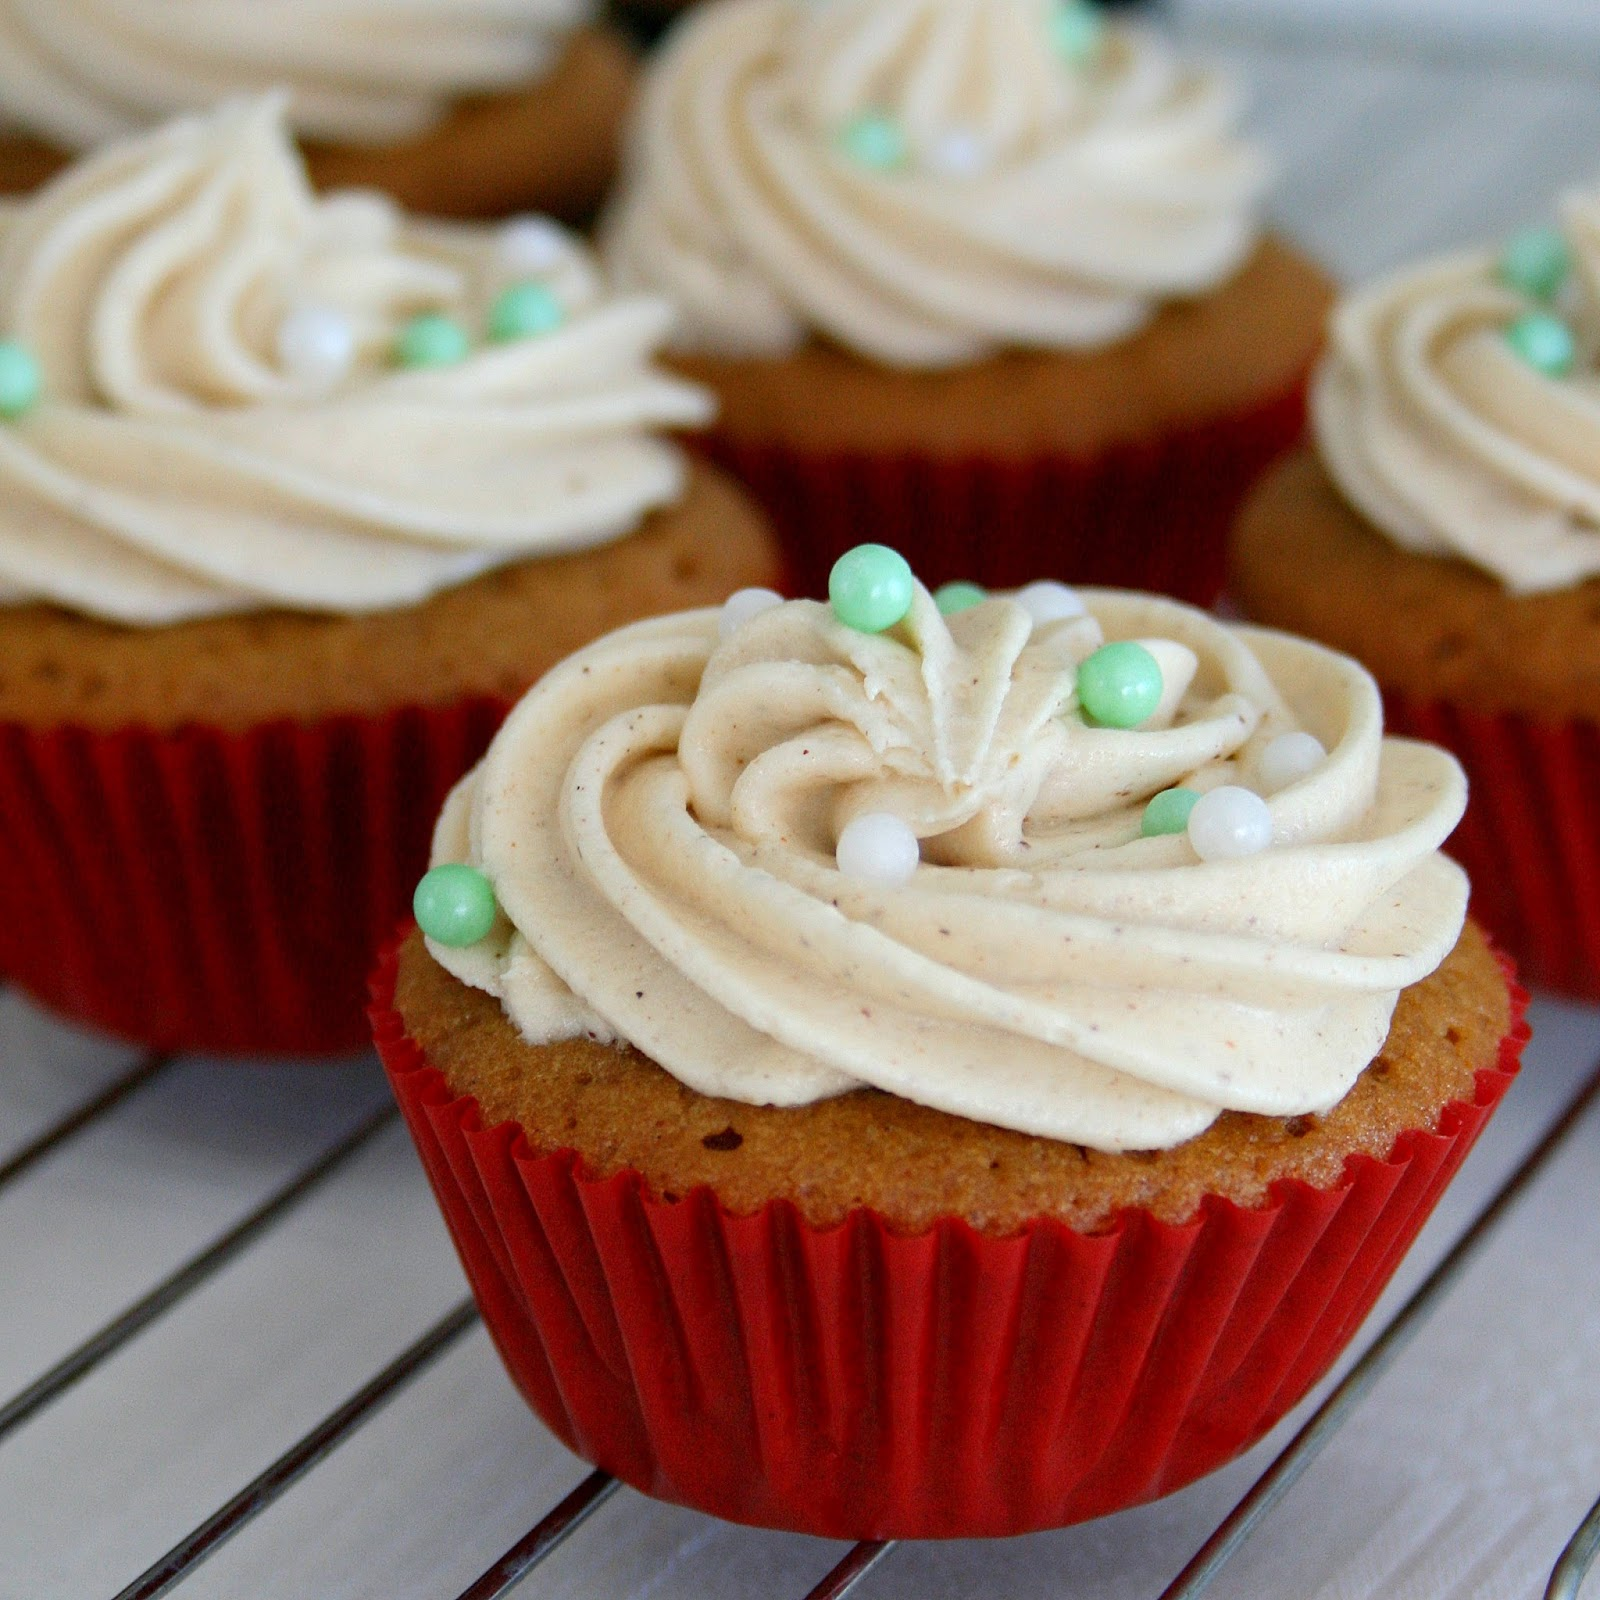 Cupcakes & Couscous: Gingerbread Cupcakes with Cinnamon Buttercream